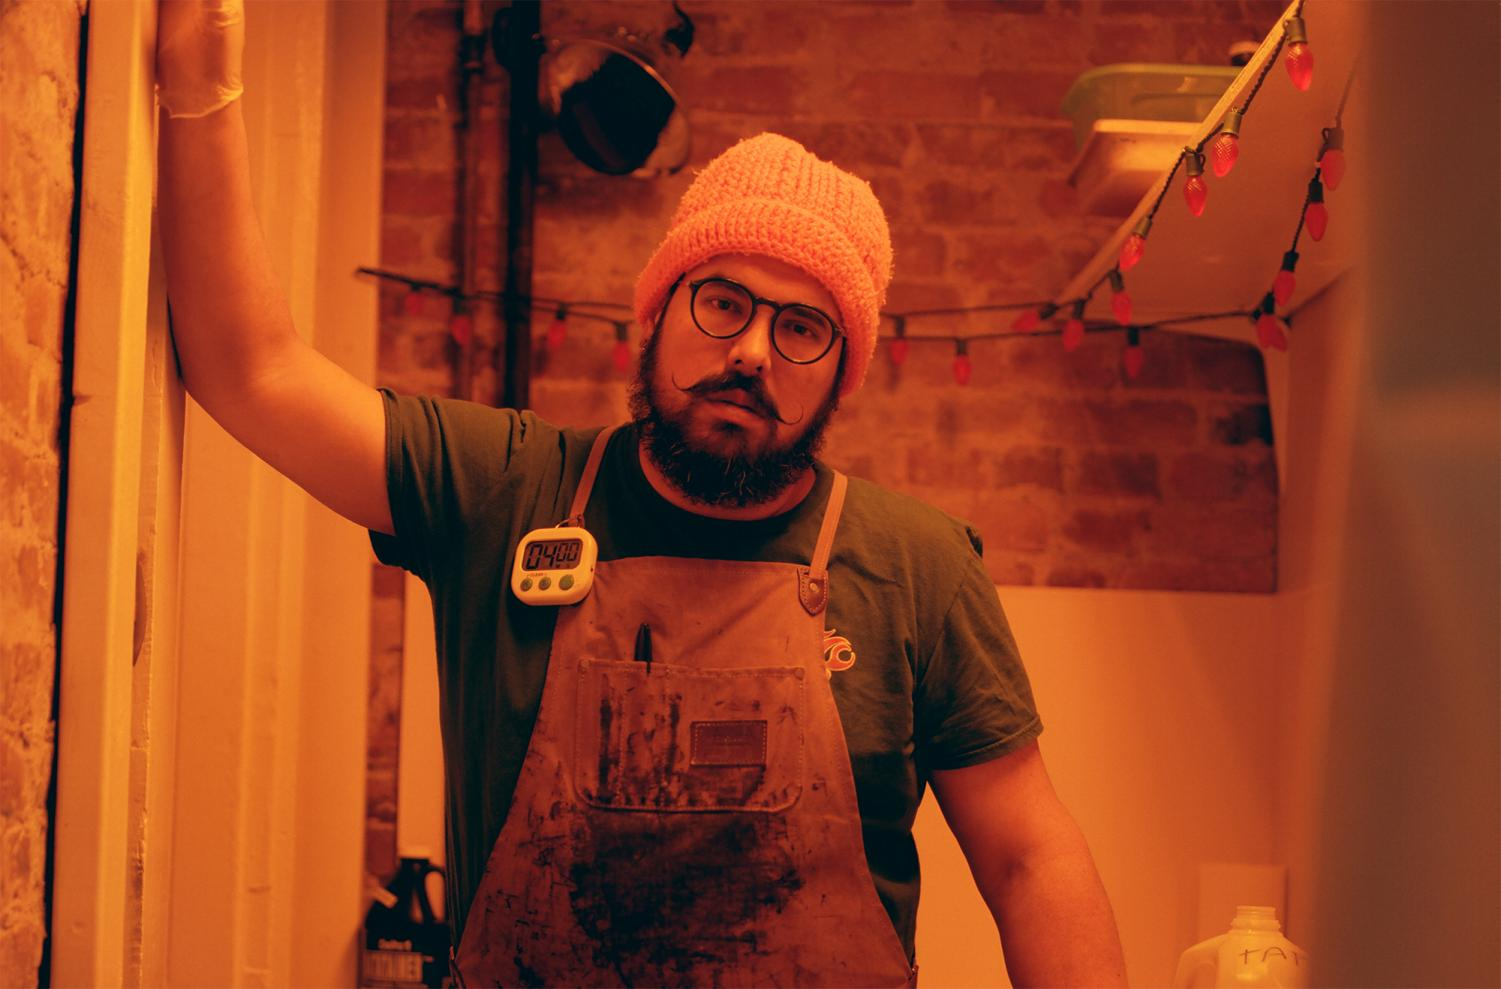 Rudy Salgado stands in his darkroom, a repurposed closet dimly lit with an orange safelight. In this small space, Salgado prepares and develops his tintype photos.